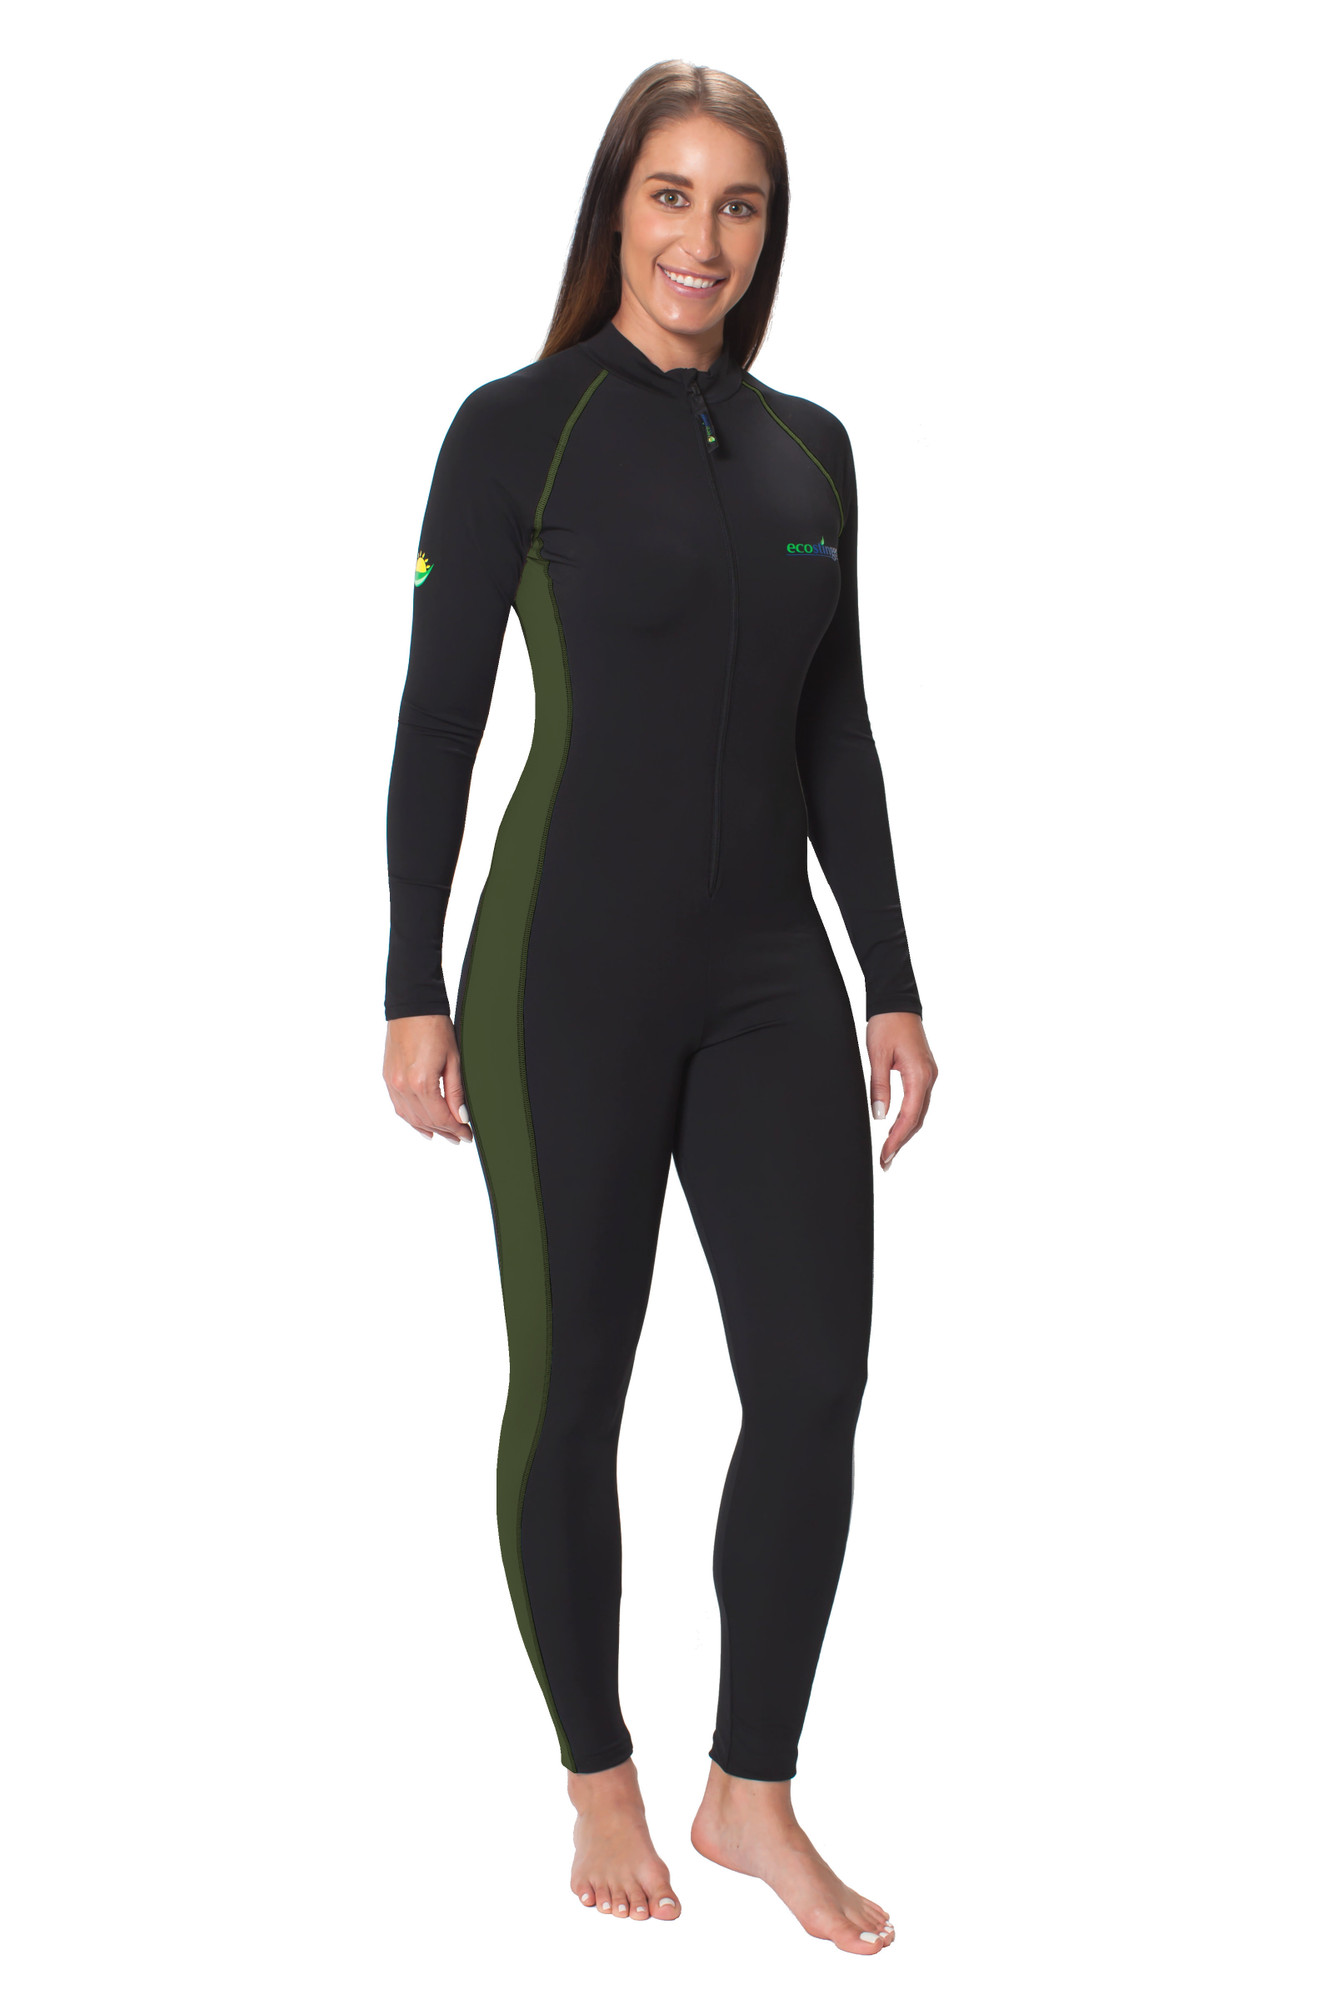 Women Full Body Coverup Swimsuit With Arm Pocket UPF50+ Sun Protection  Black Military Green (Chlorine Resistant) - EcoStinger